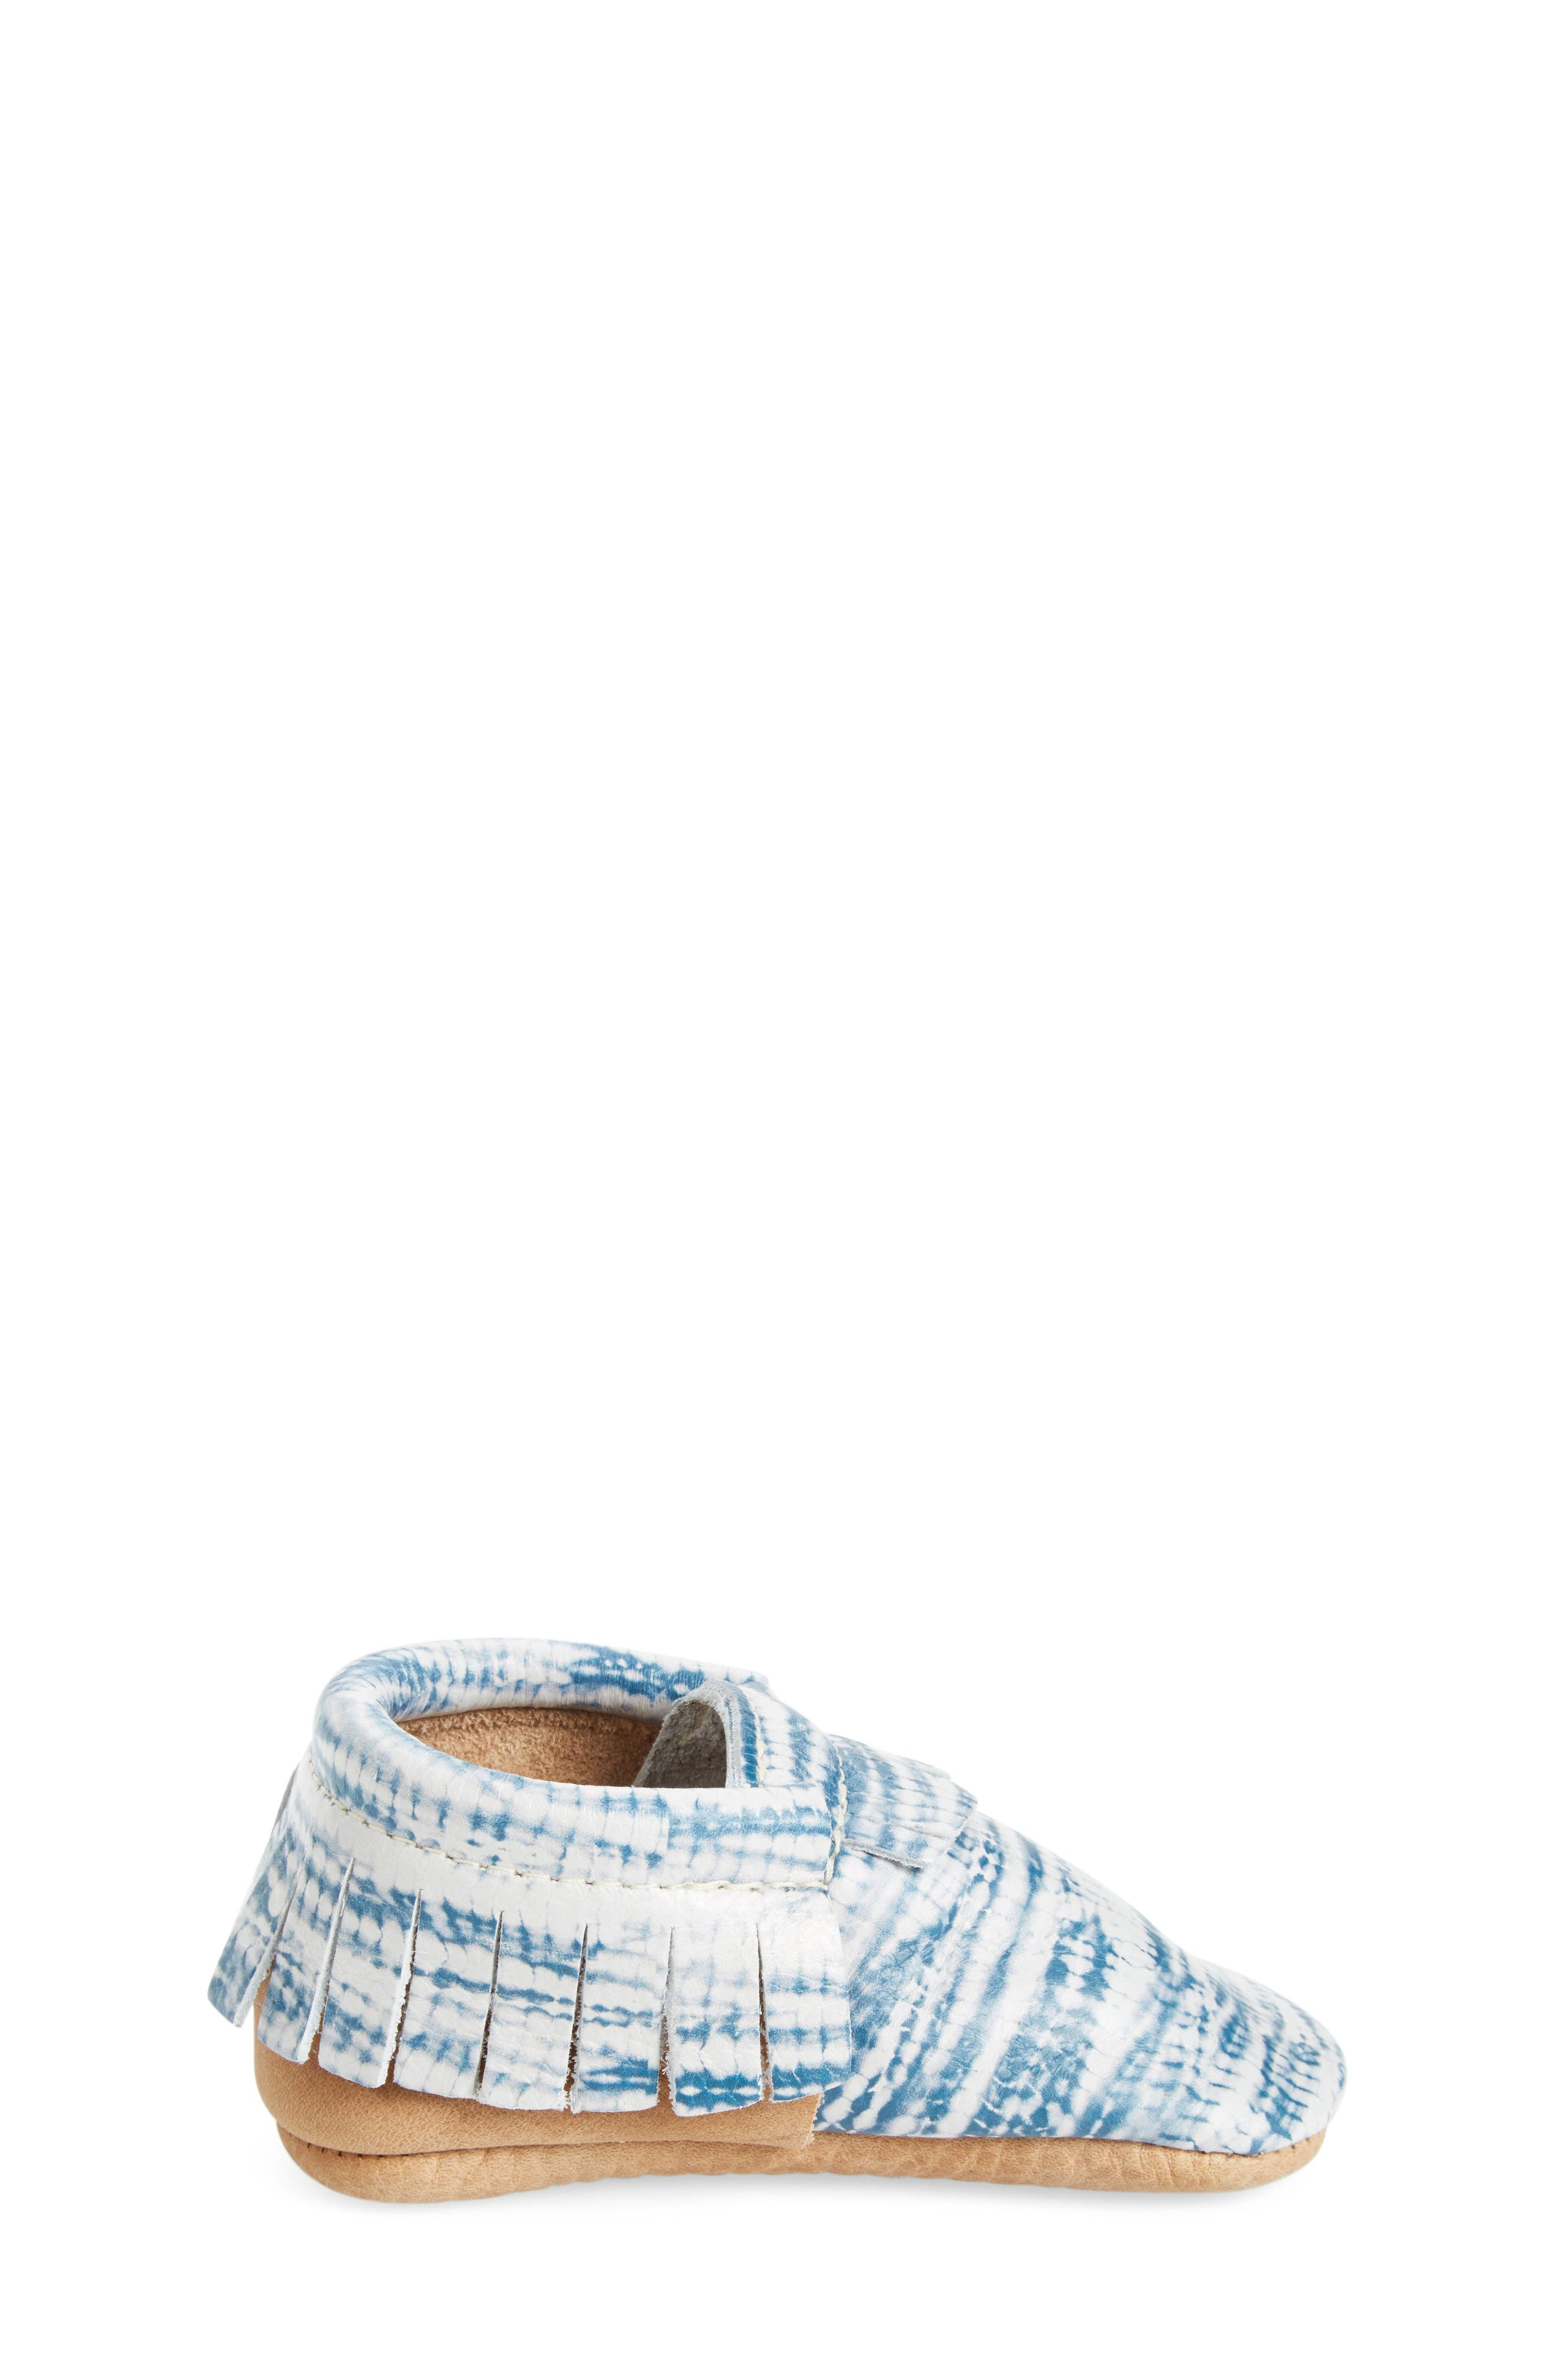 Tie Dye Moccasin,                             Alternate thumbnail 3, color,                             402